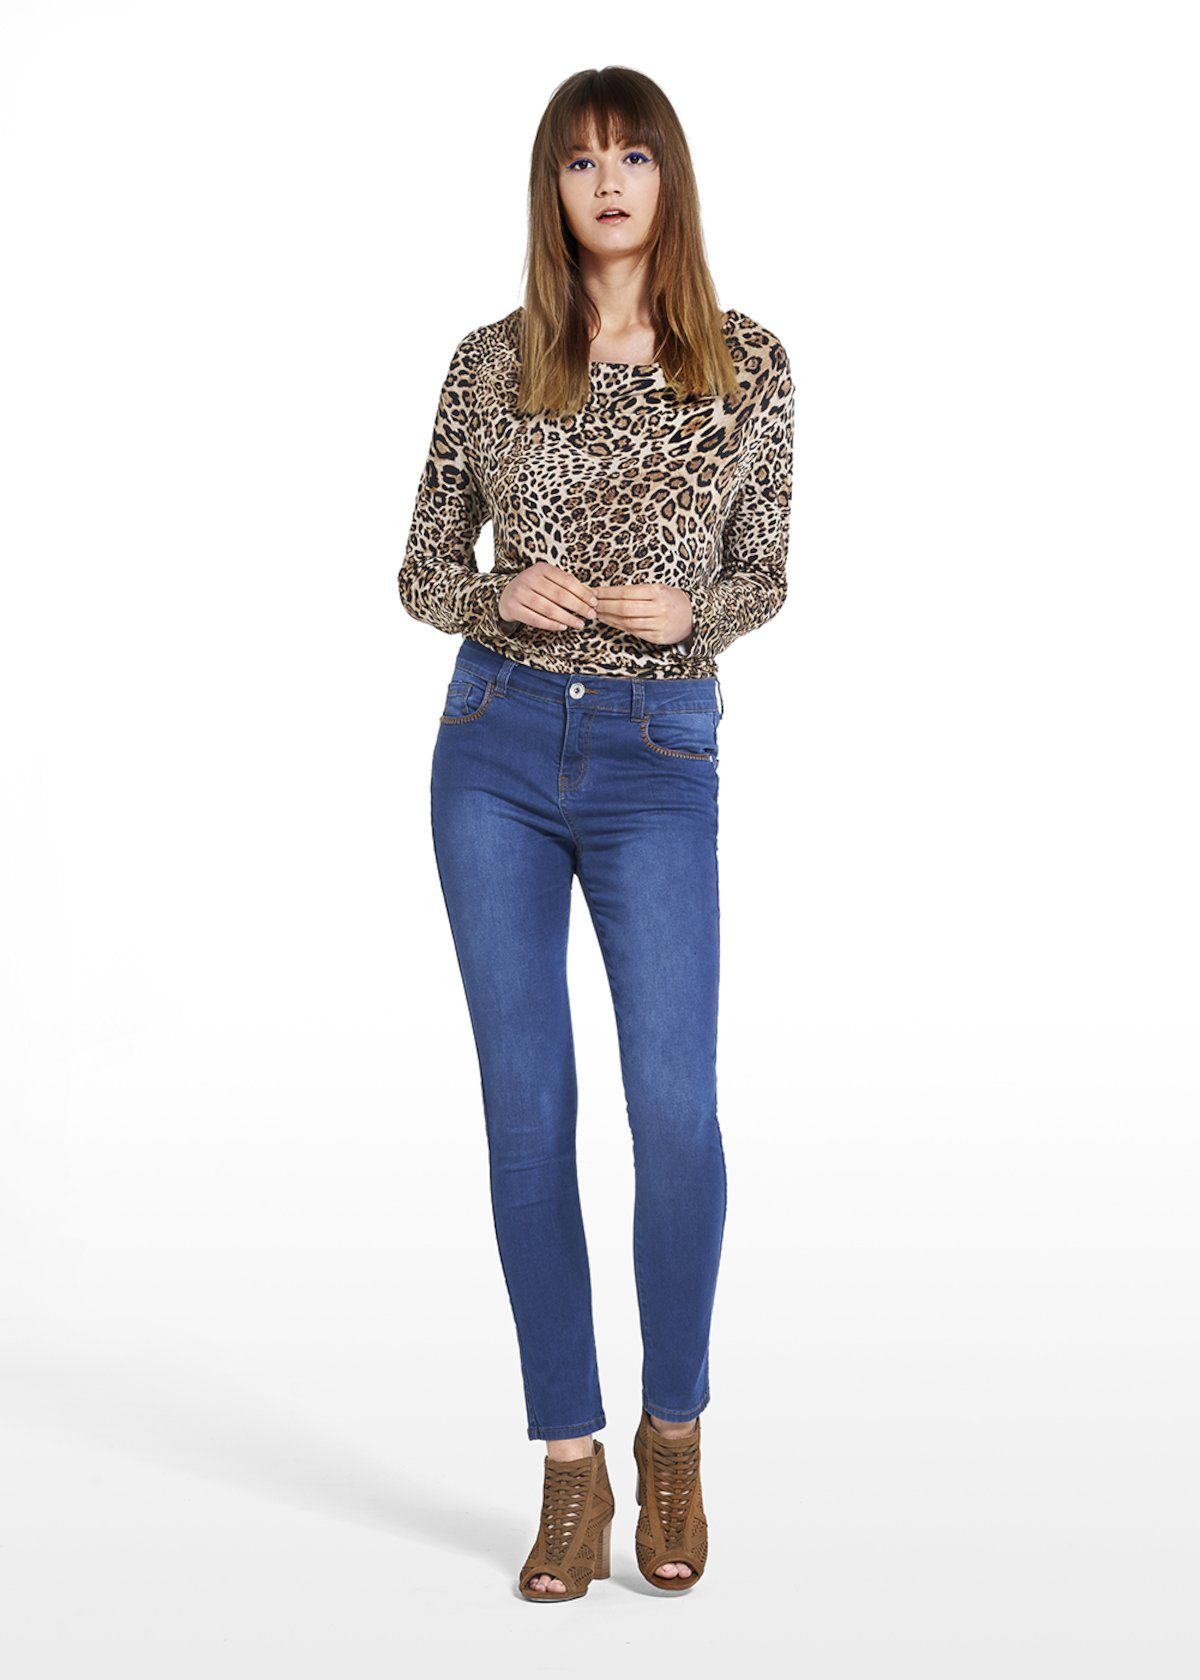 Patterned spotted t-shirt Susanna with hooded neckline - Beige / Black Animalier - Woman